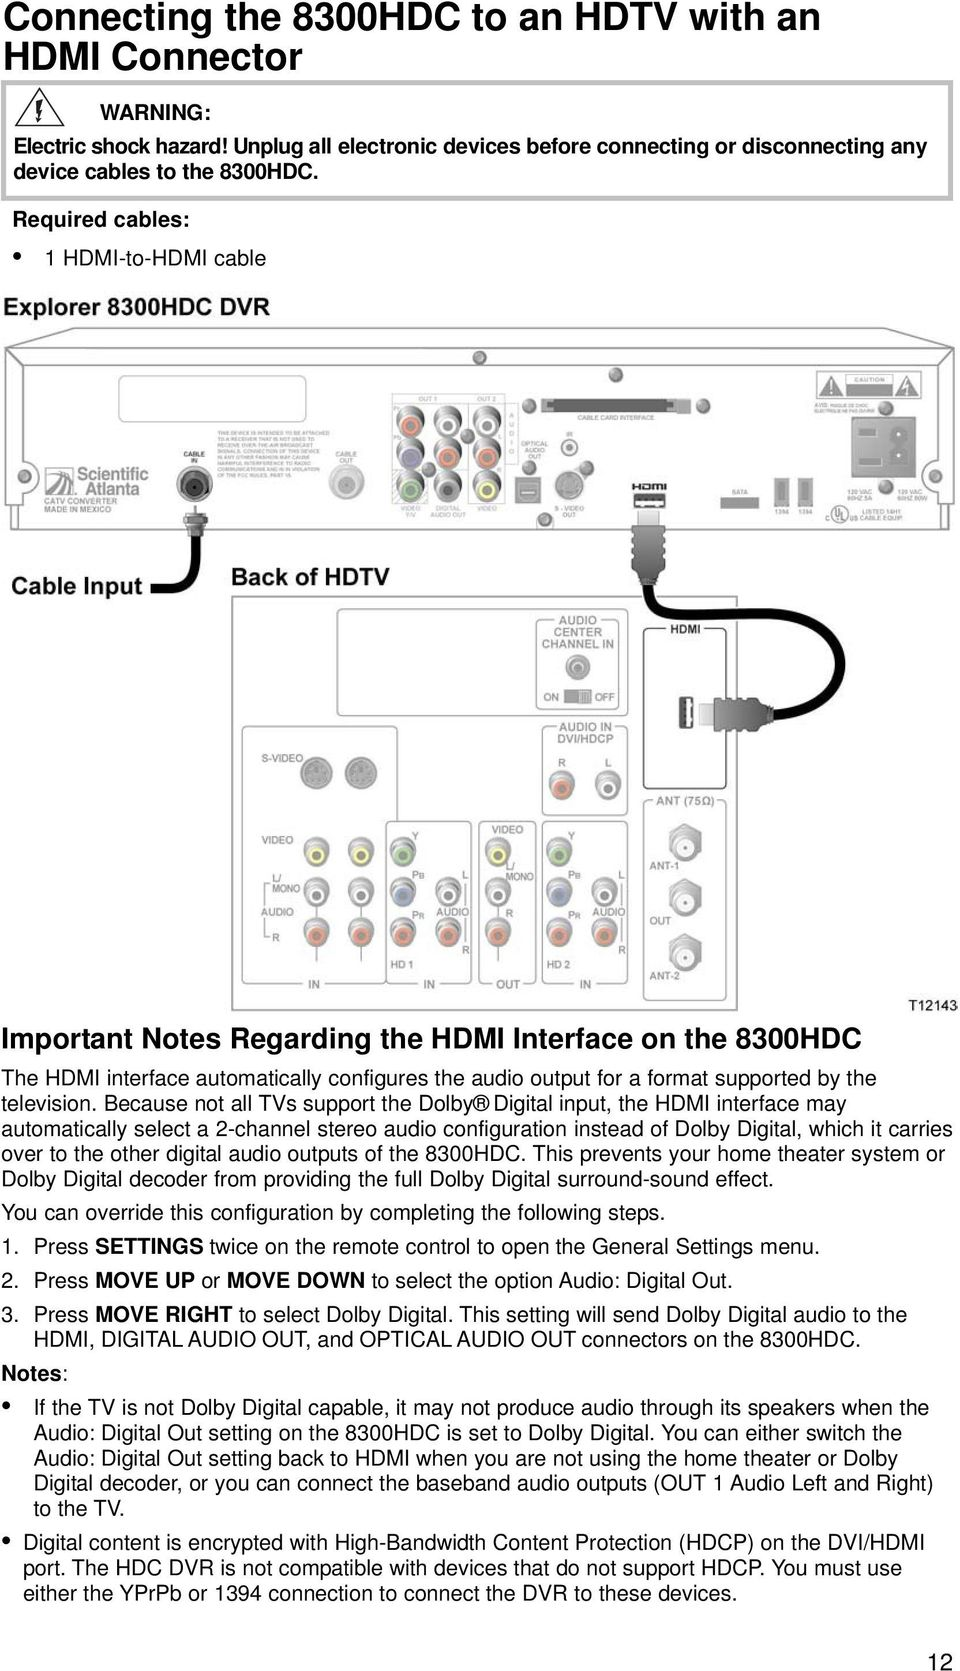 Because not all TVs support the Dolby Digital input, the HDMI interface may automatically select a 2-channel stereo audio configuration instead of Dolby Digital, which it carries over to the other